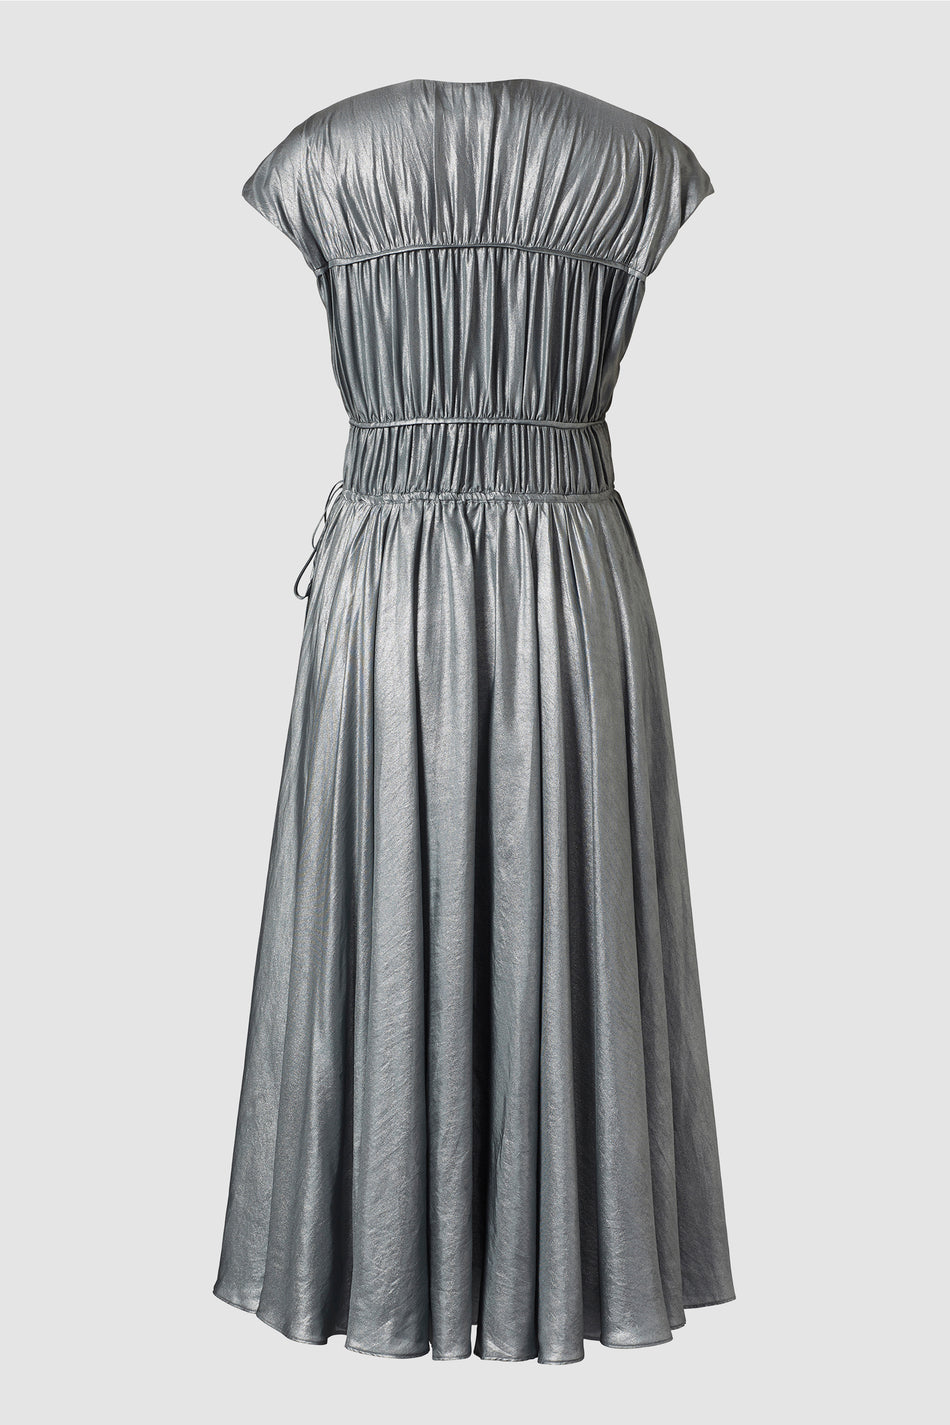 Ceres Silver Metallic Silk Midi Dress